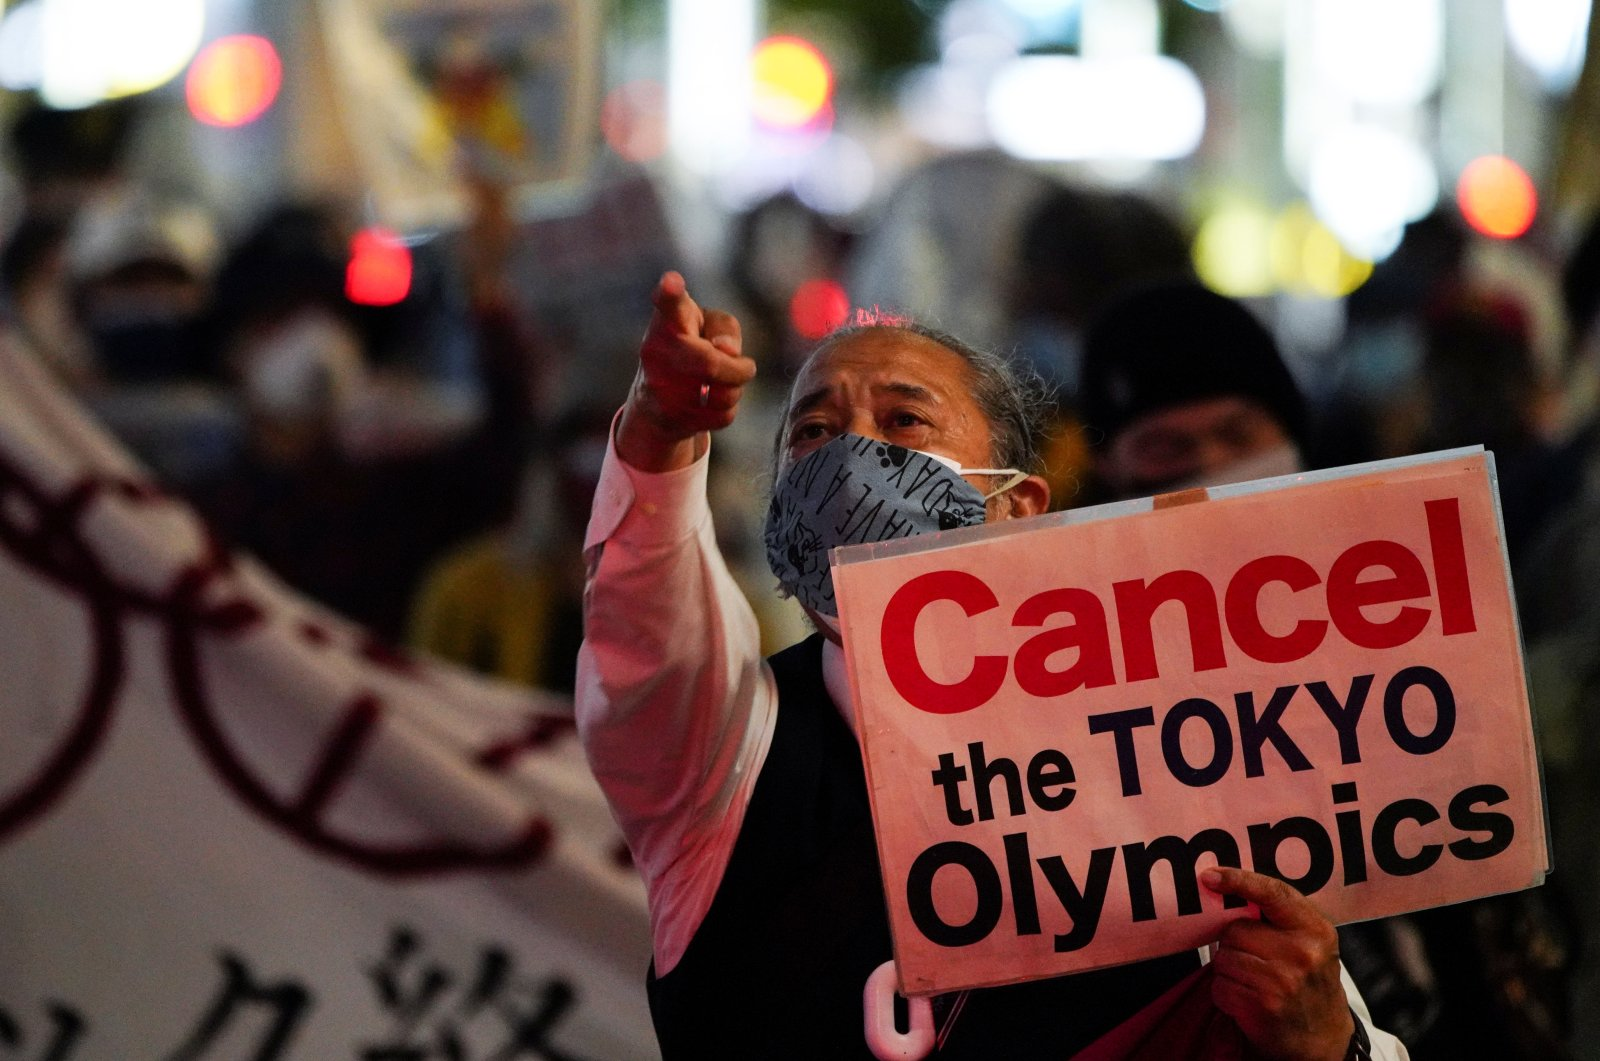 An anti-Olympics group member gestures as he holds a sign during a protest march, amid the COVID-19 outbreak, in Tokyo, Japan, May 17, 2021. (Reuters Photo)